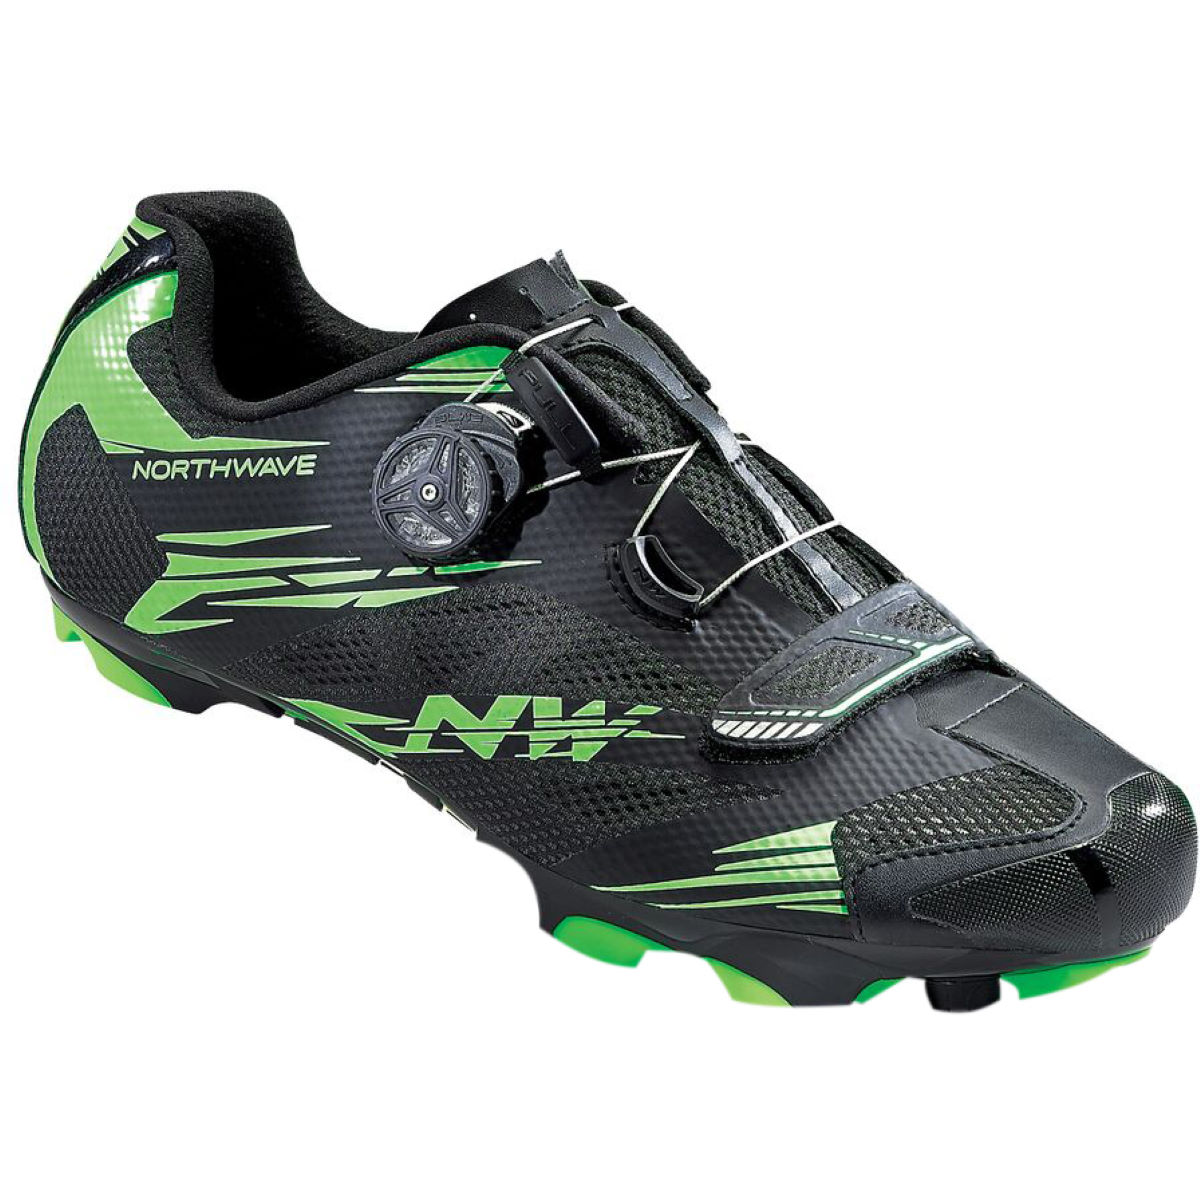 Northwave Scorpius 2 Plus MTB Shoes   Offroad Shoes